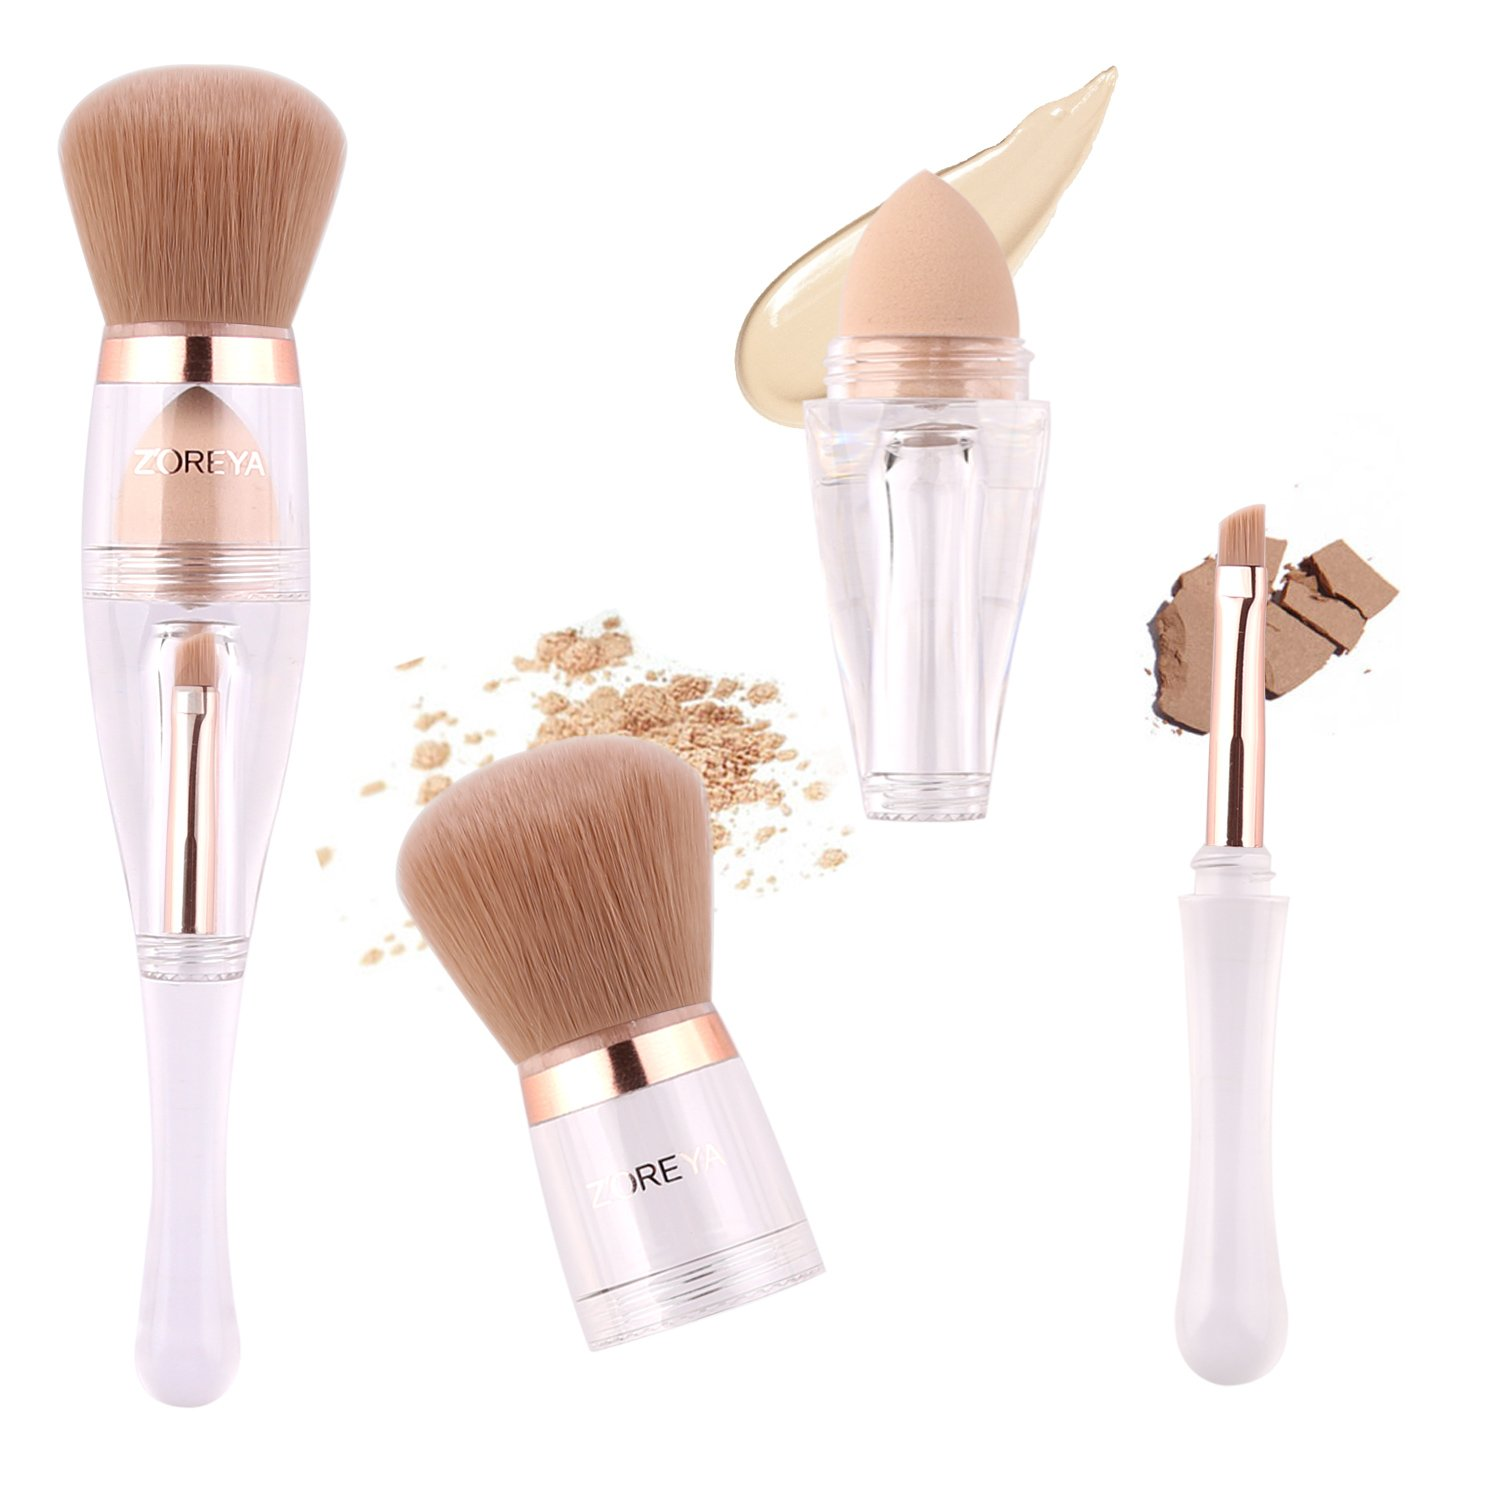 Makeup Brushes Zoreya(TM) 3 in 1 New TRIO Complexion 3x High Efficient Multipurpose Professional Makeup Brushes set Kit with Maximum Application, Bronzer Brush, Blender Sponge (Angled Brow Set)